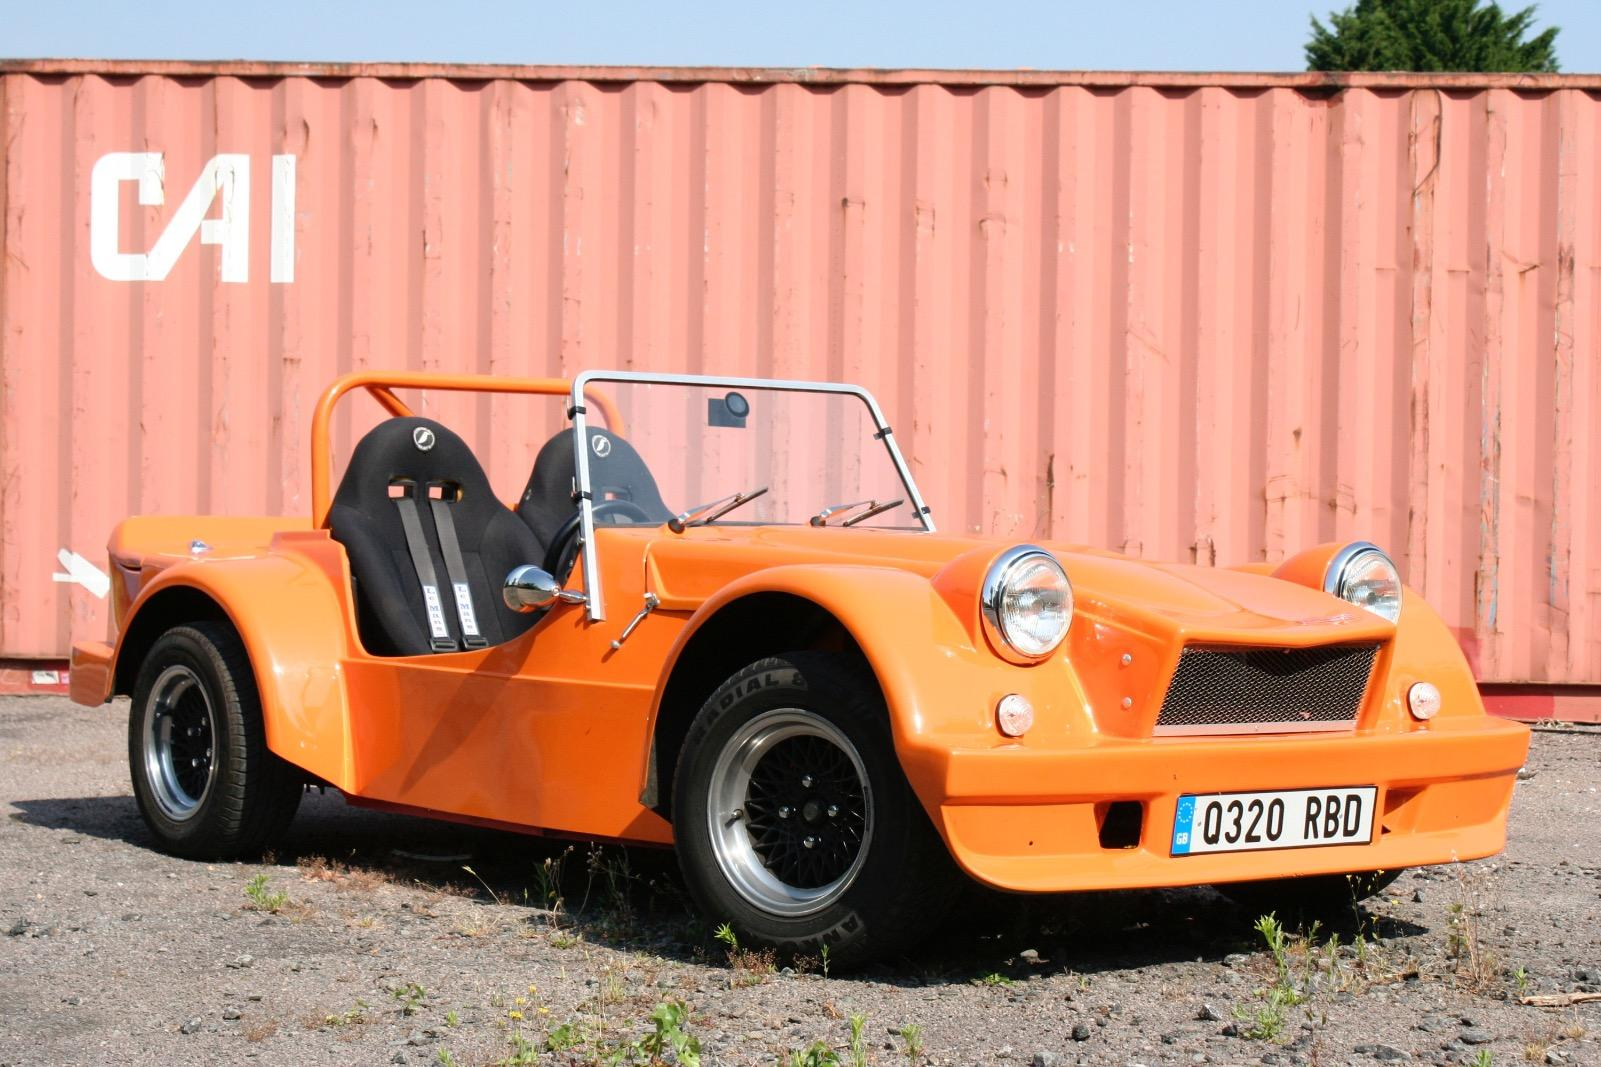 Caterham Classic cars for sale | Autoclassics.com